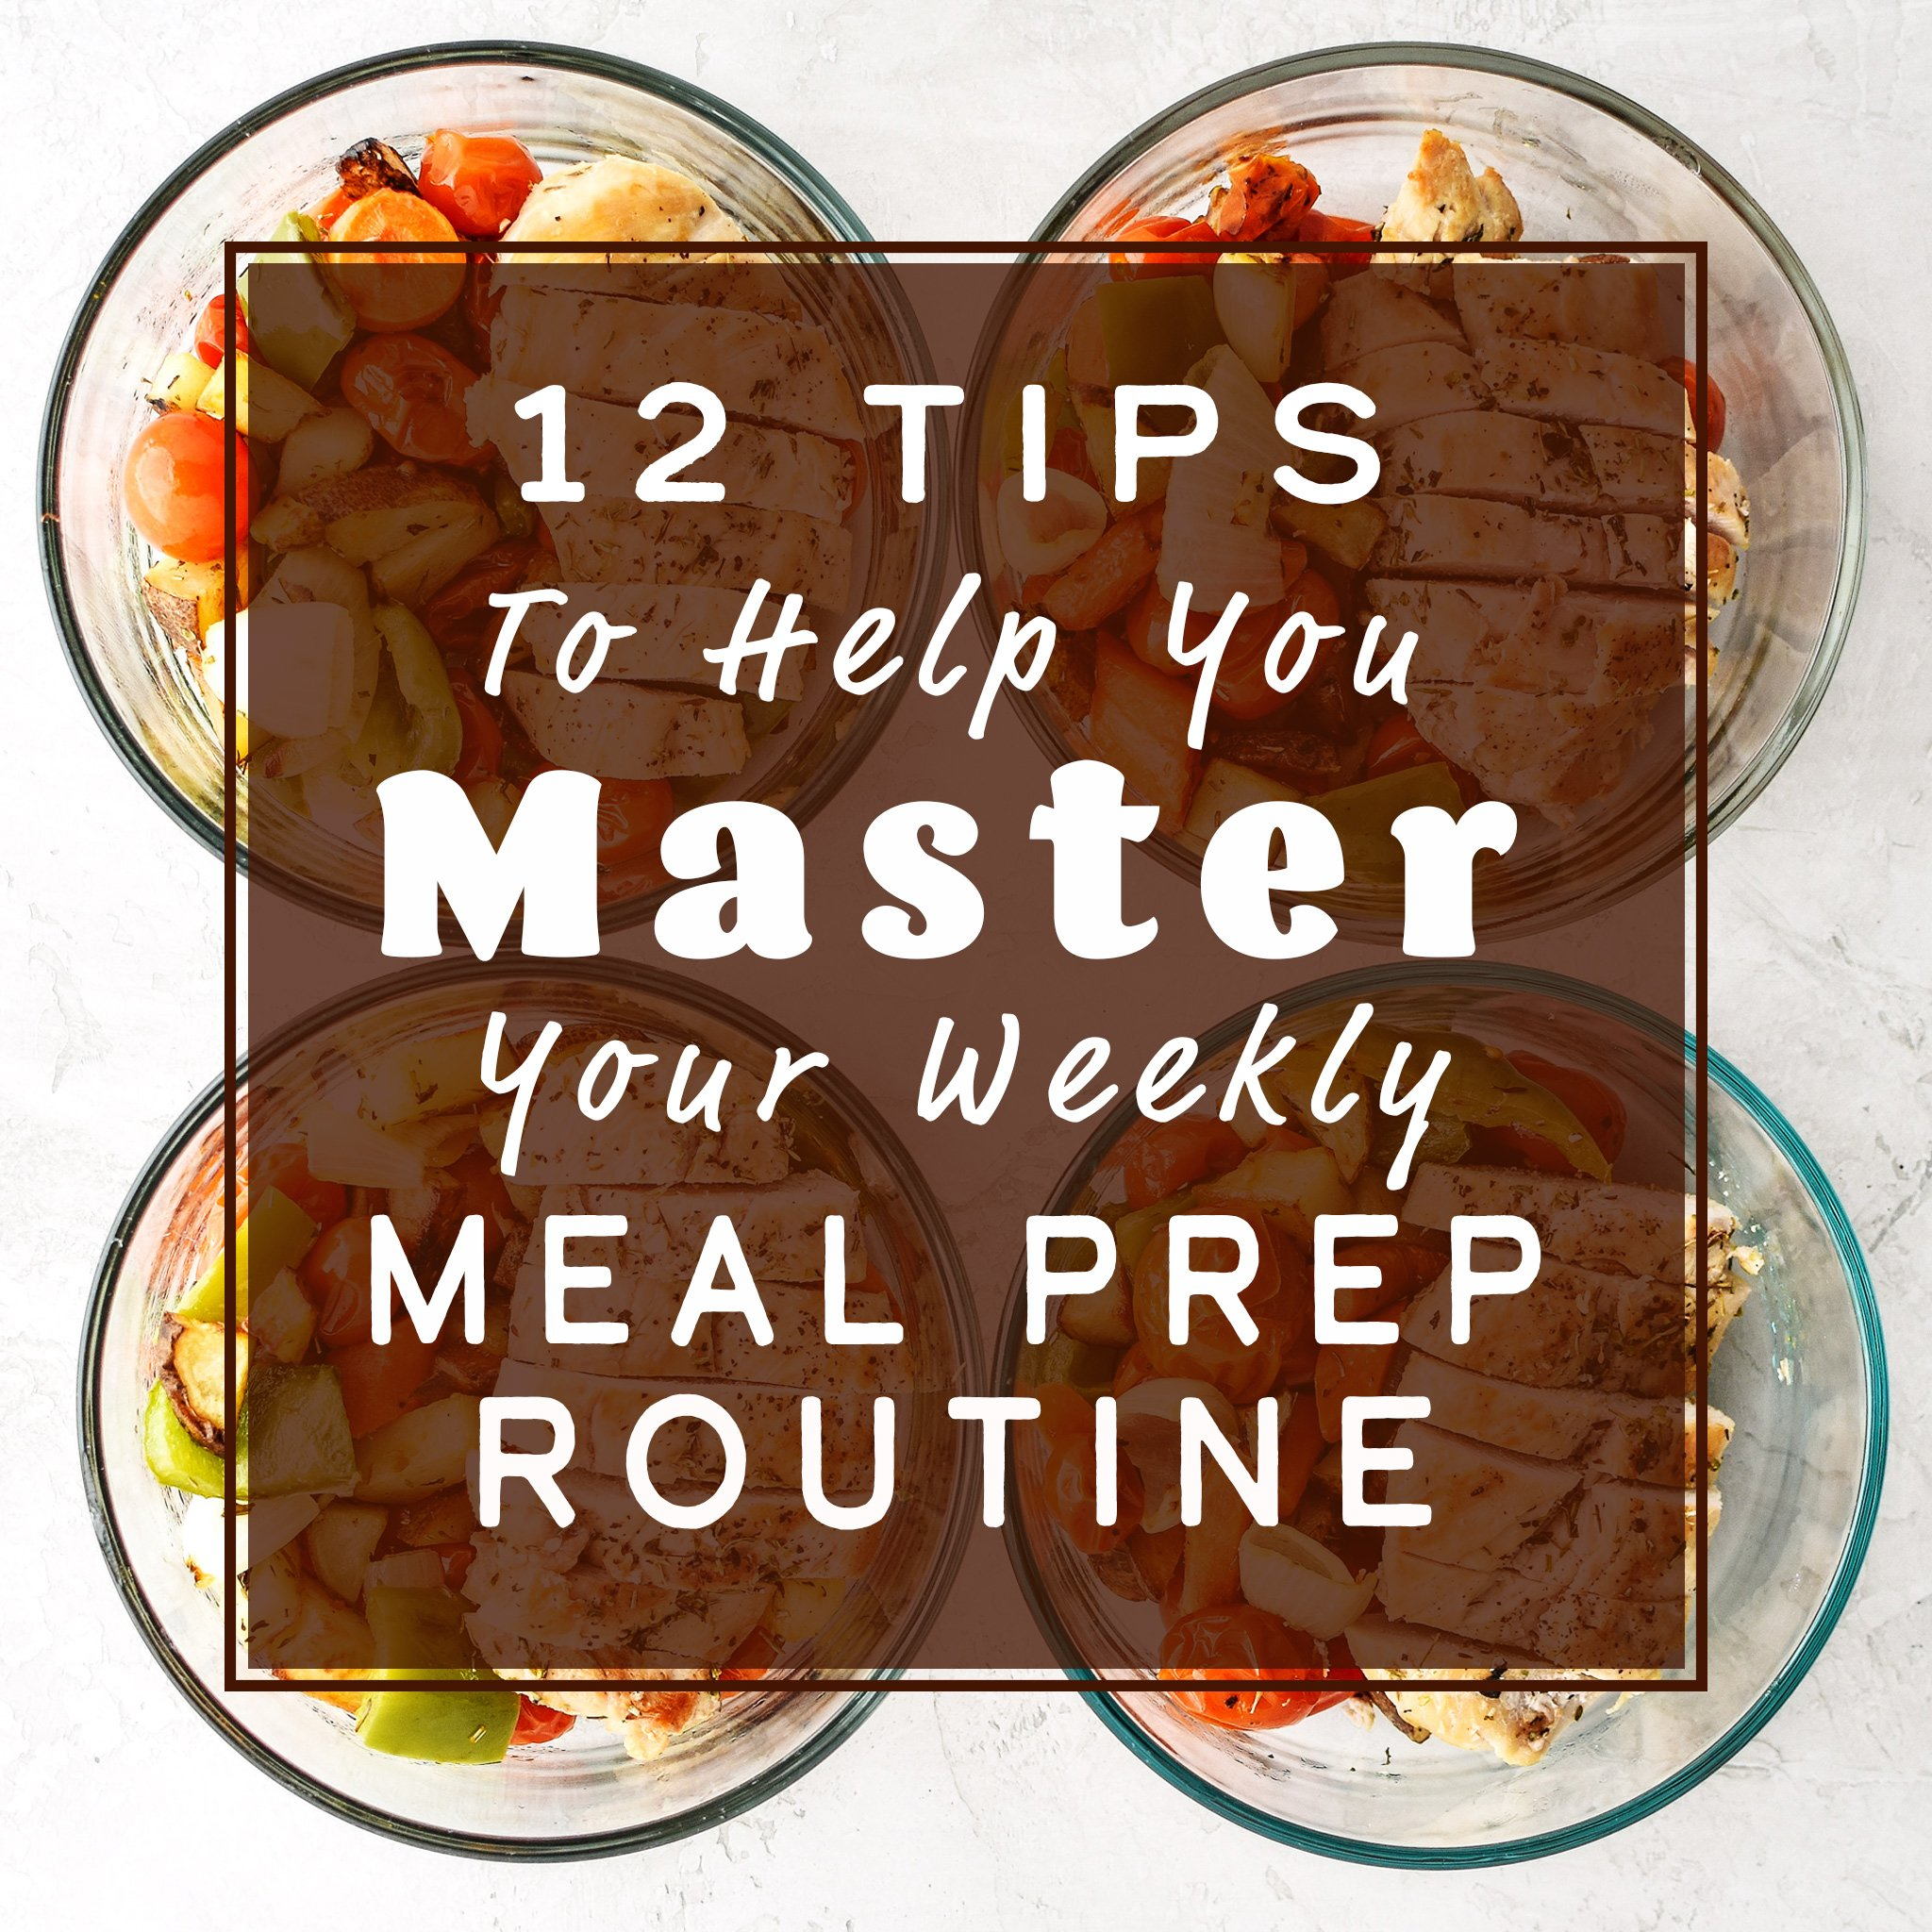 Cover/title image for the article: 12 Tips to Help You Master Your Weekly Meal Prep Routine